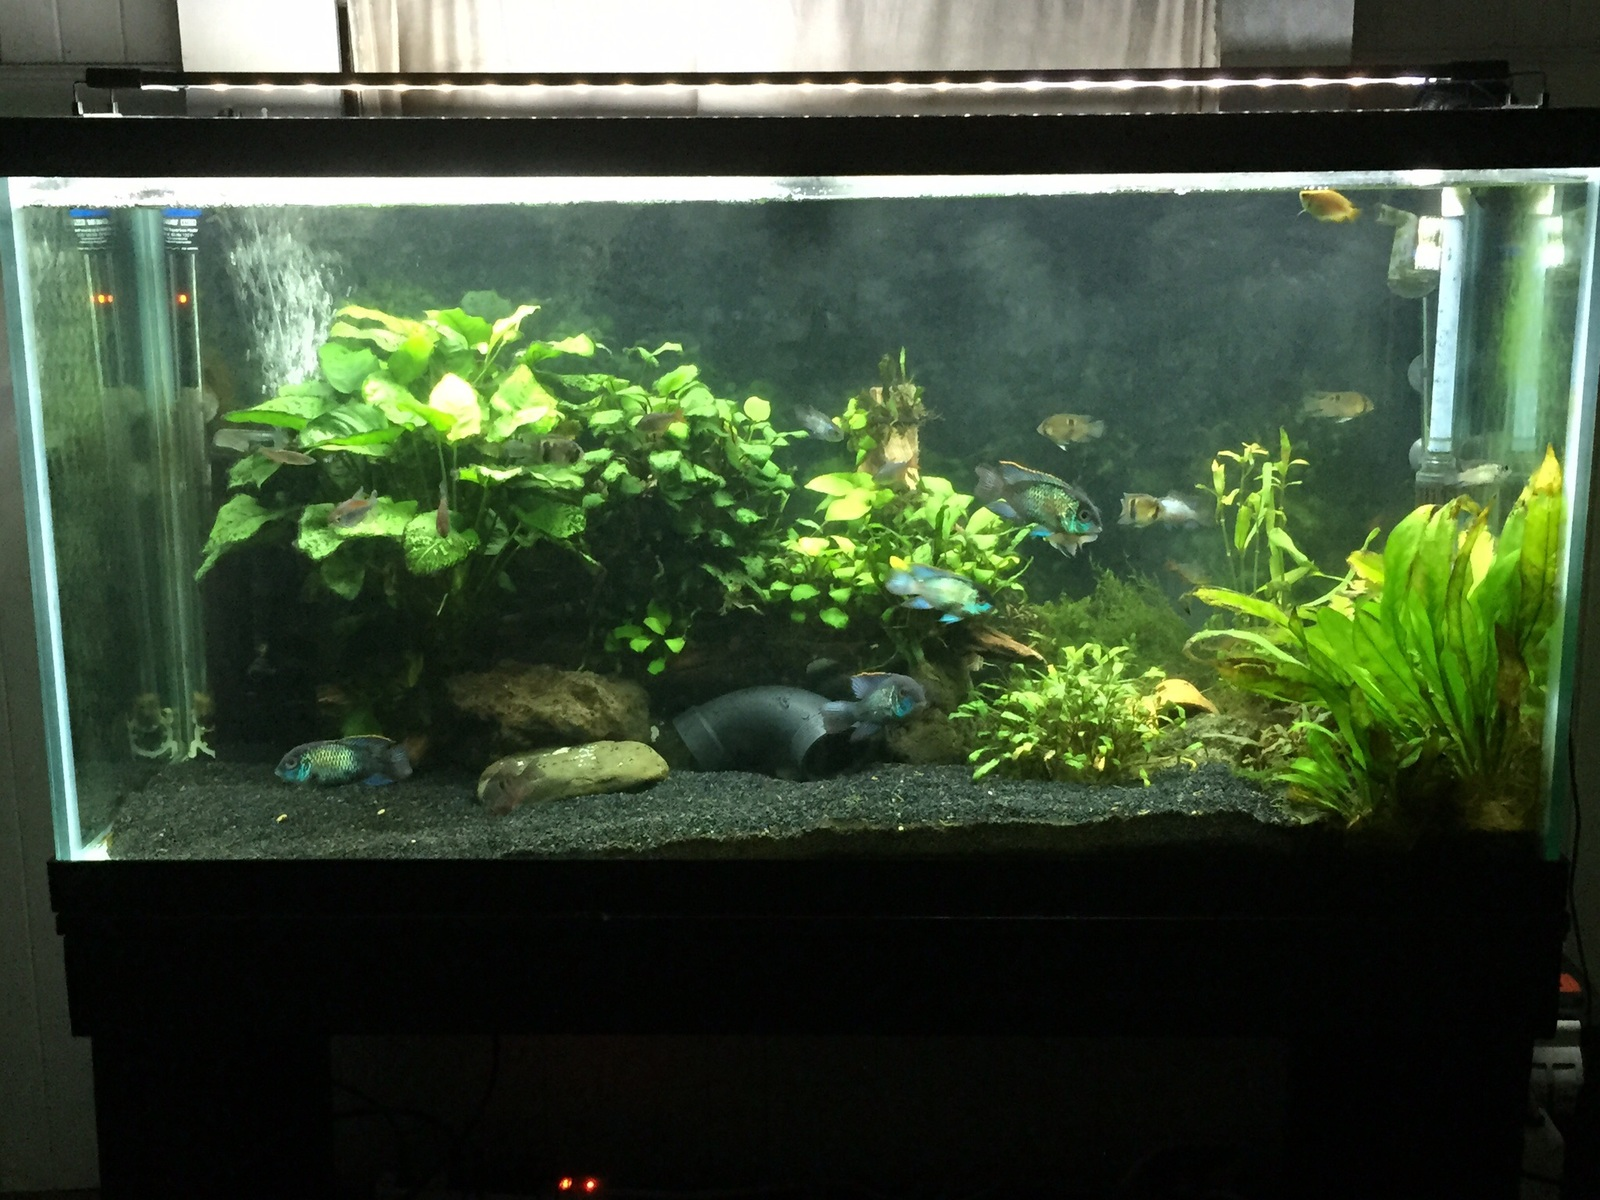 Just another picture of my planted tank | by Curtis Kurokawa